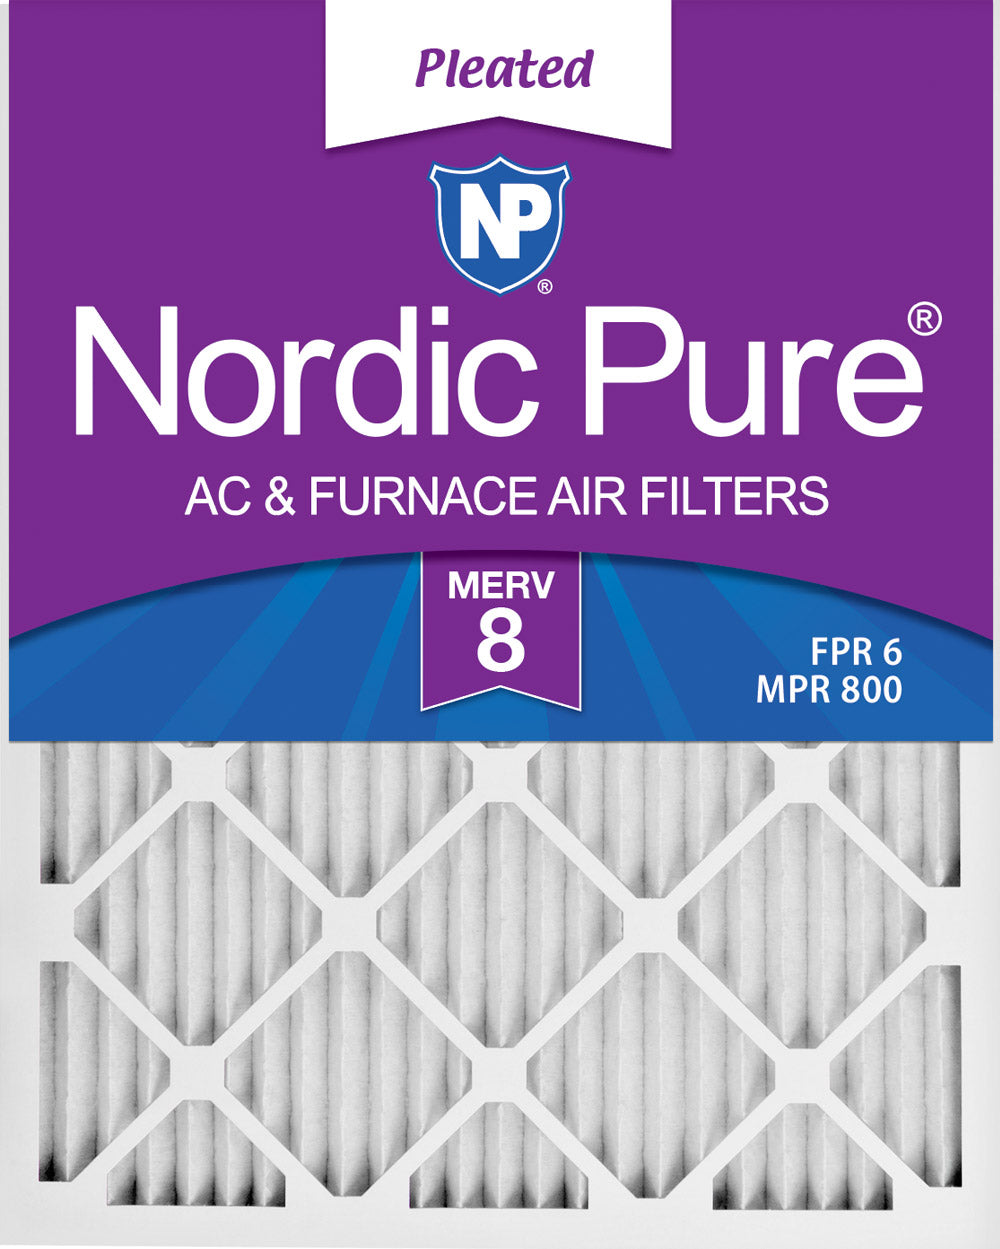 24x30x1 Pleated MERV 8 Air Filters 6 Pack